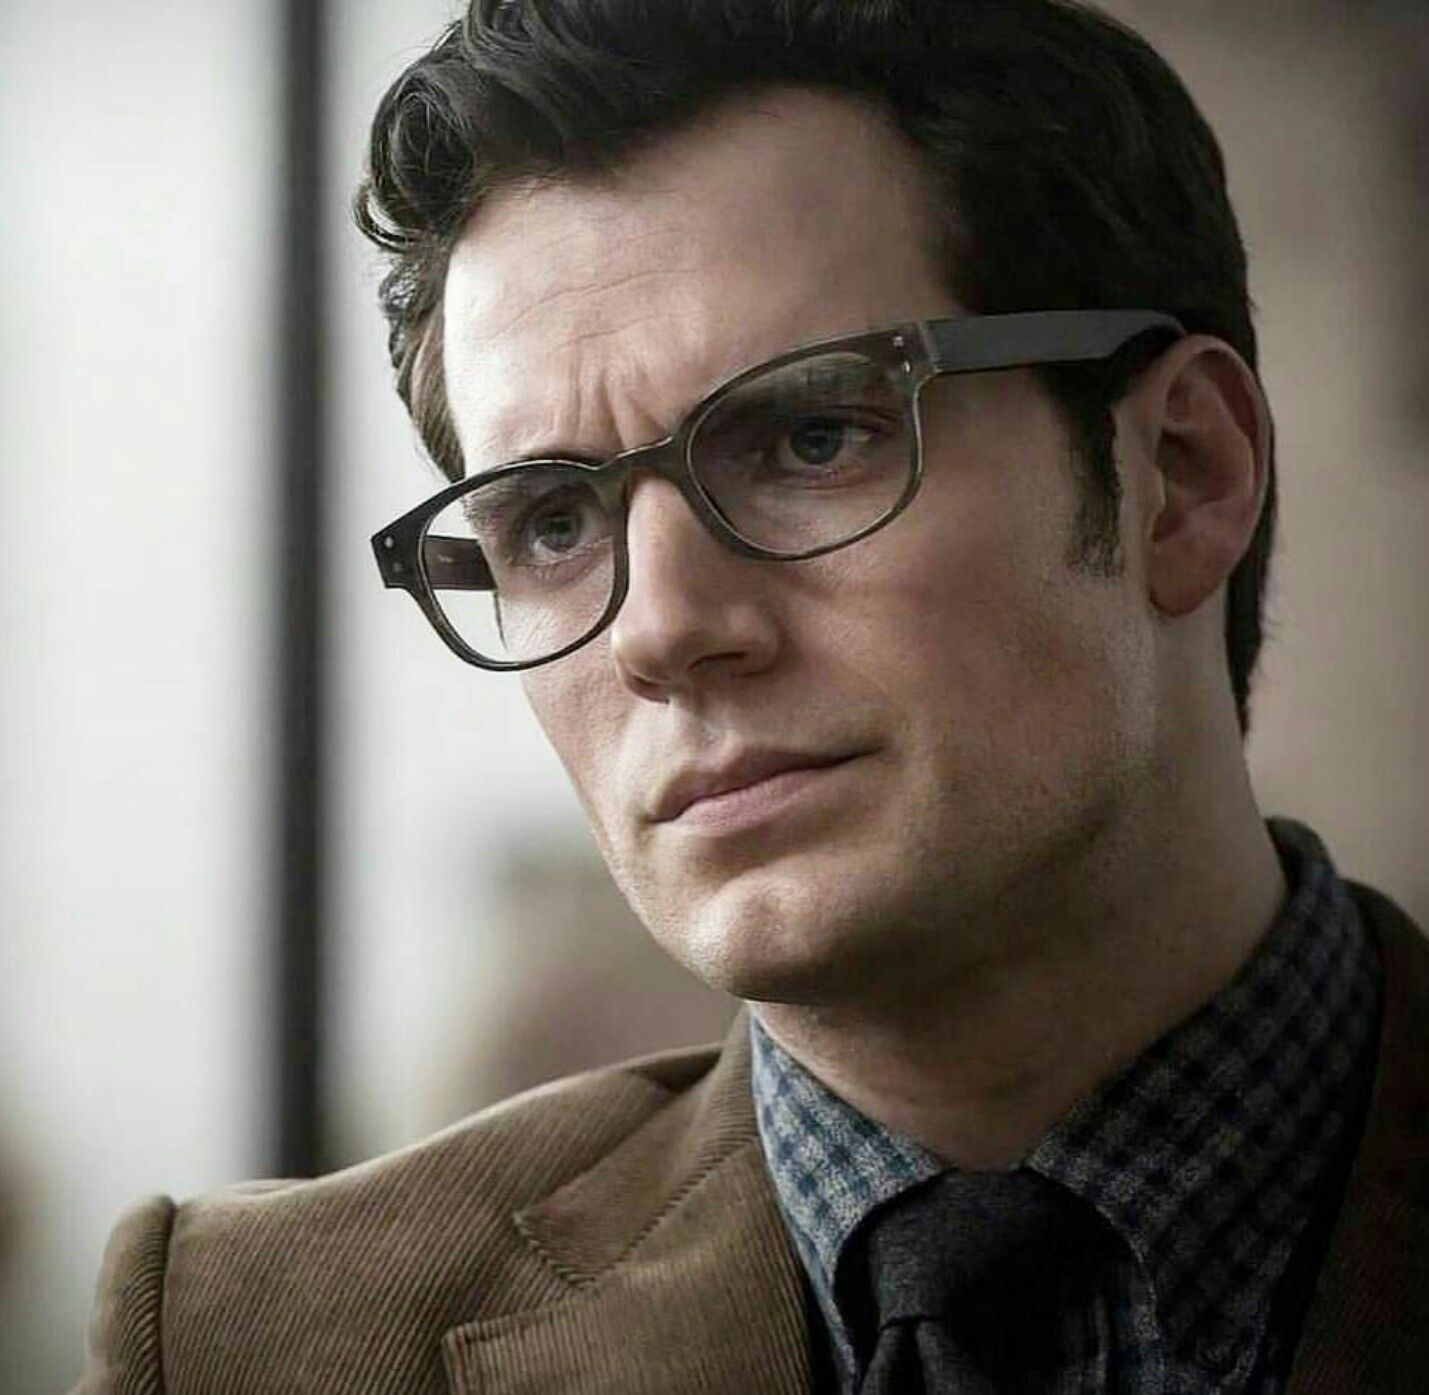 Henry Cavill As Clark Kent People In 2019 Henry Cavill Henry